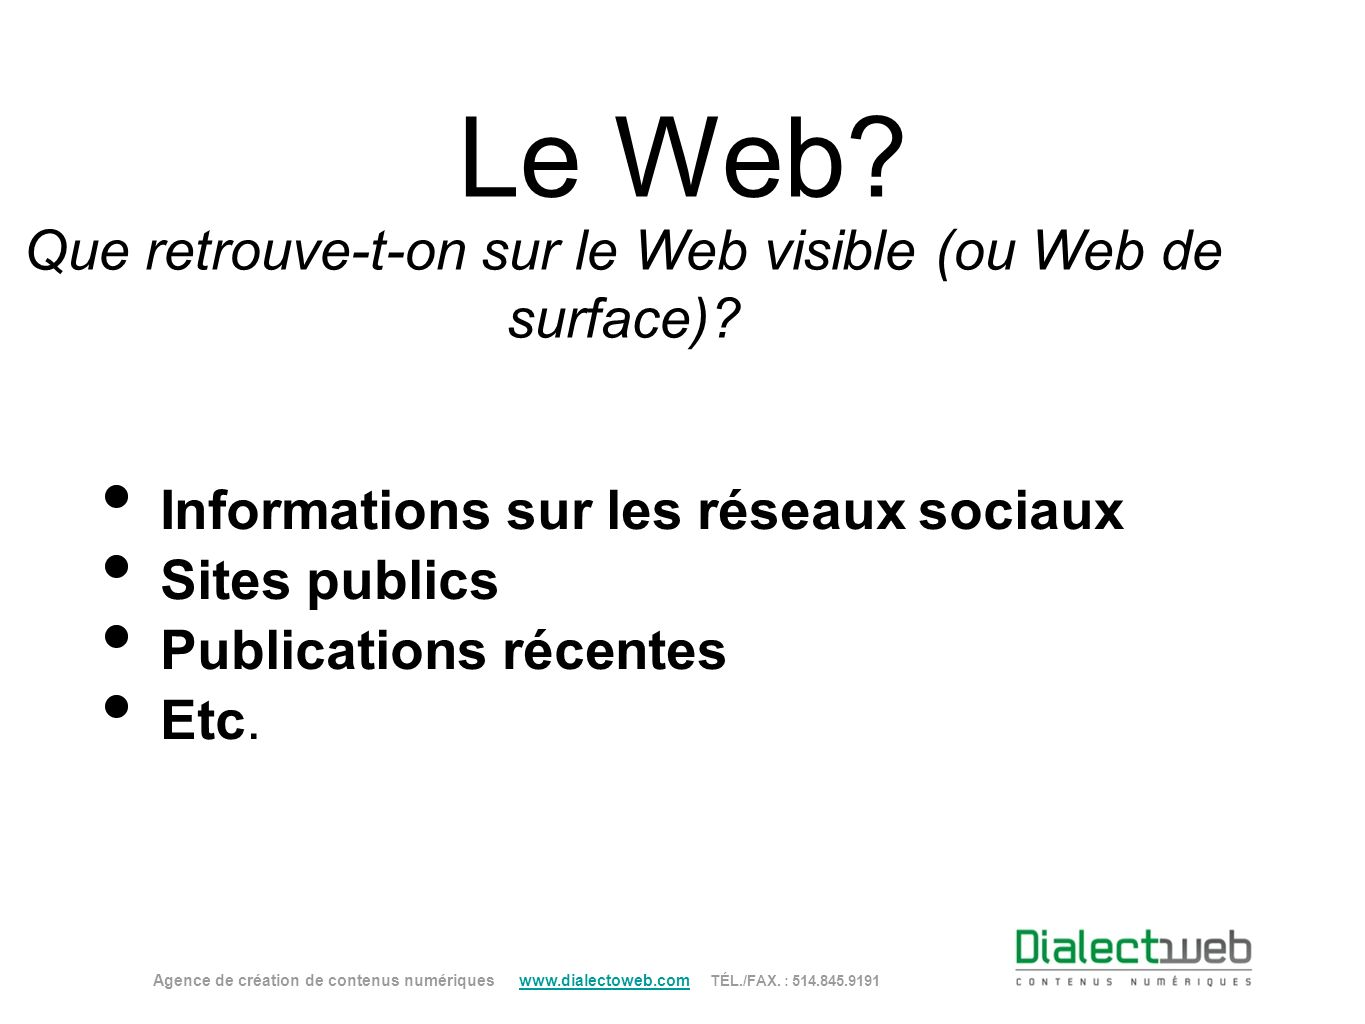 Que retrouve-t-on sur le Web visible (ou Web de surface)